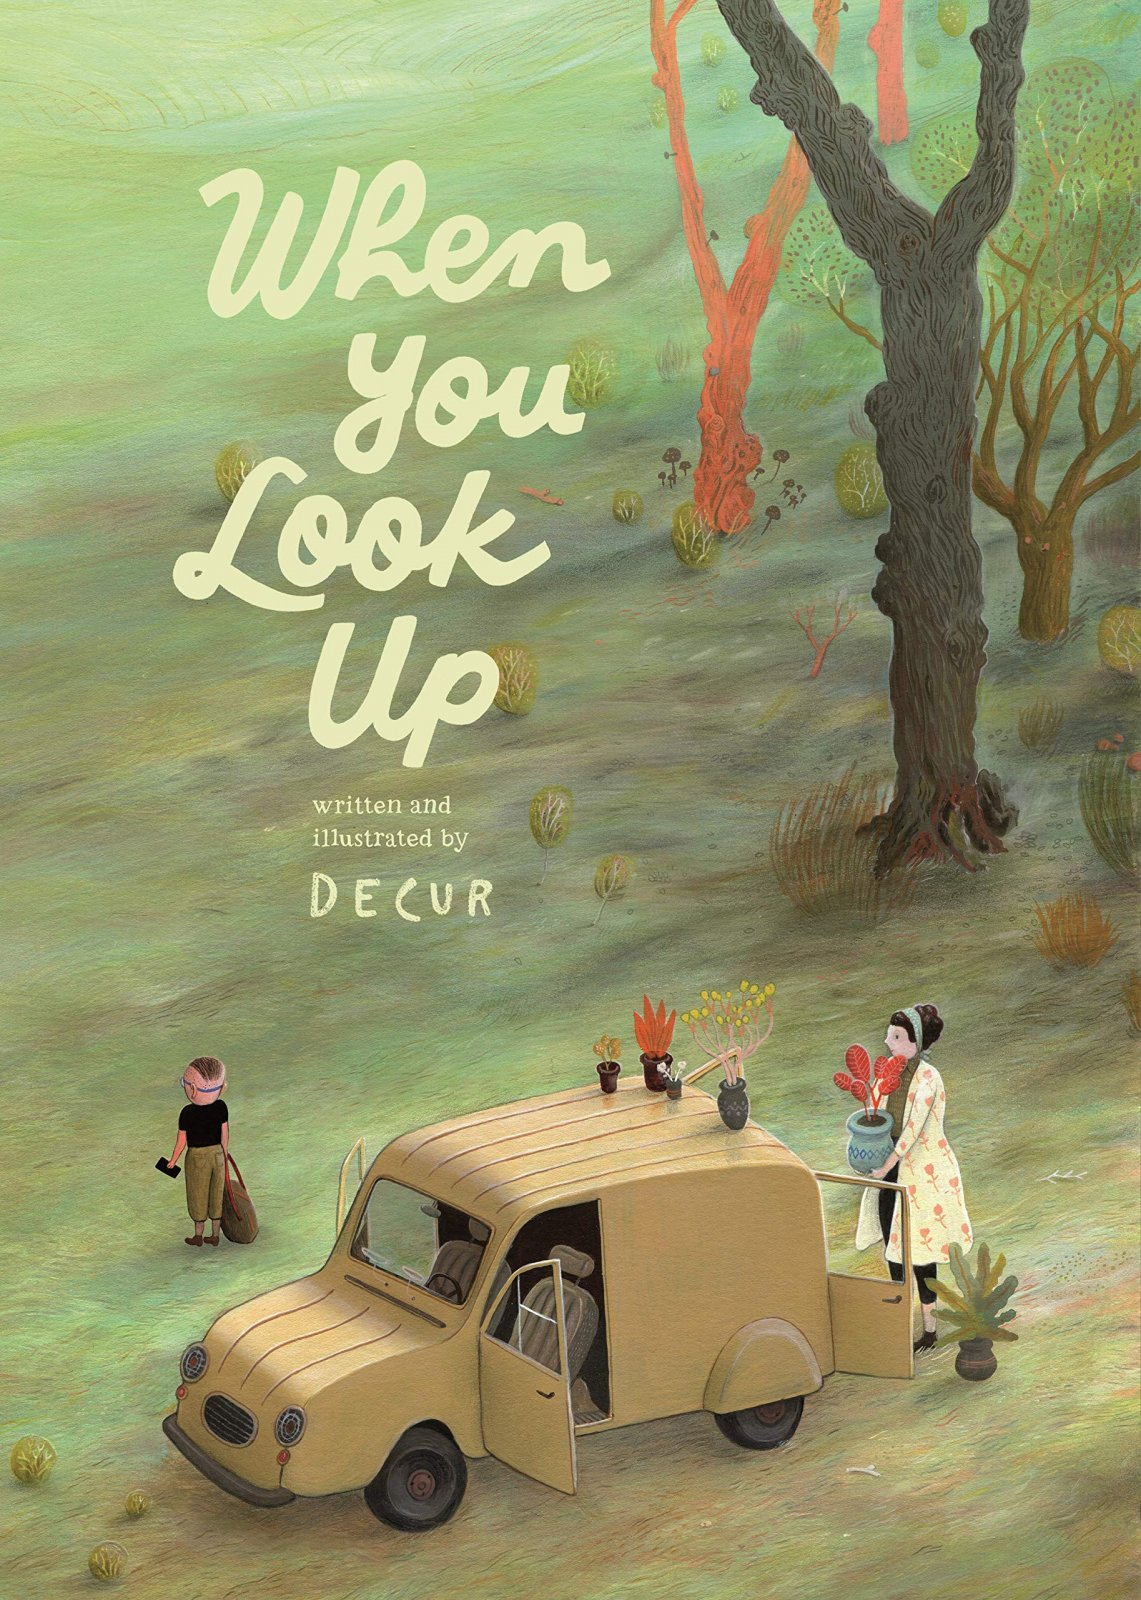 When You Look Up by Decur